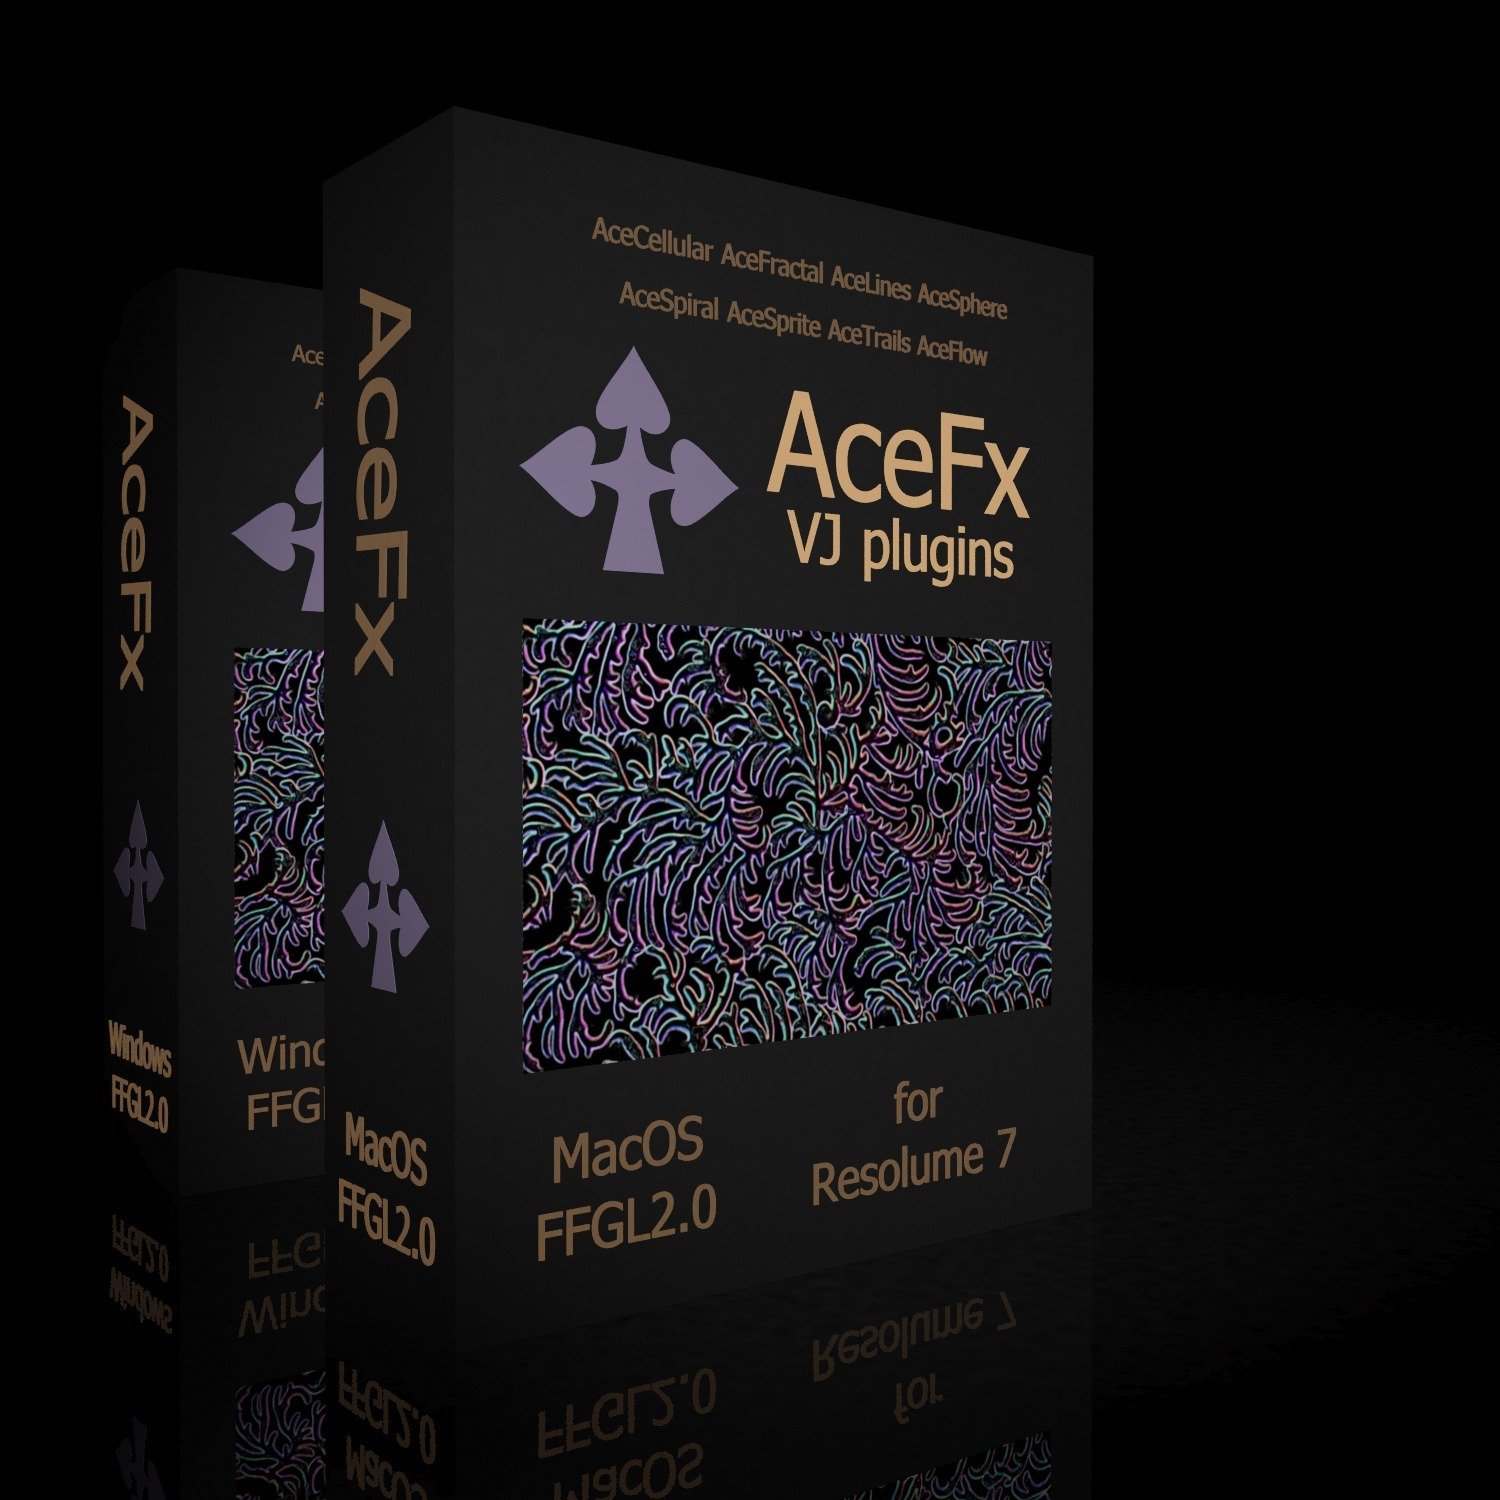 AceFX 2.0 VJ plugins for Windows